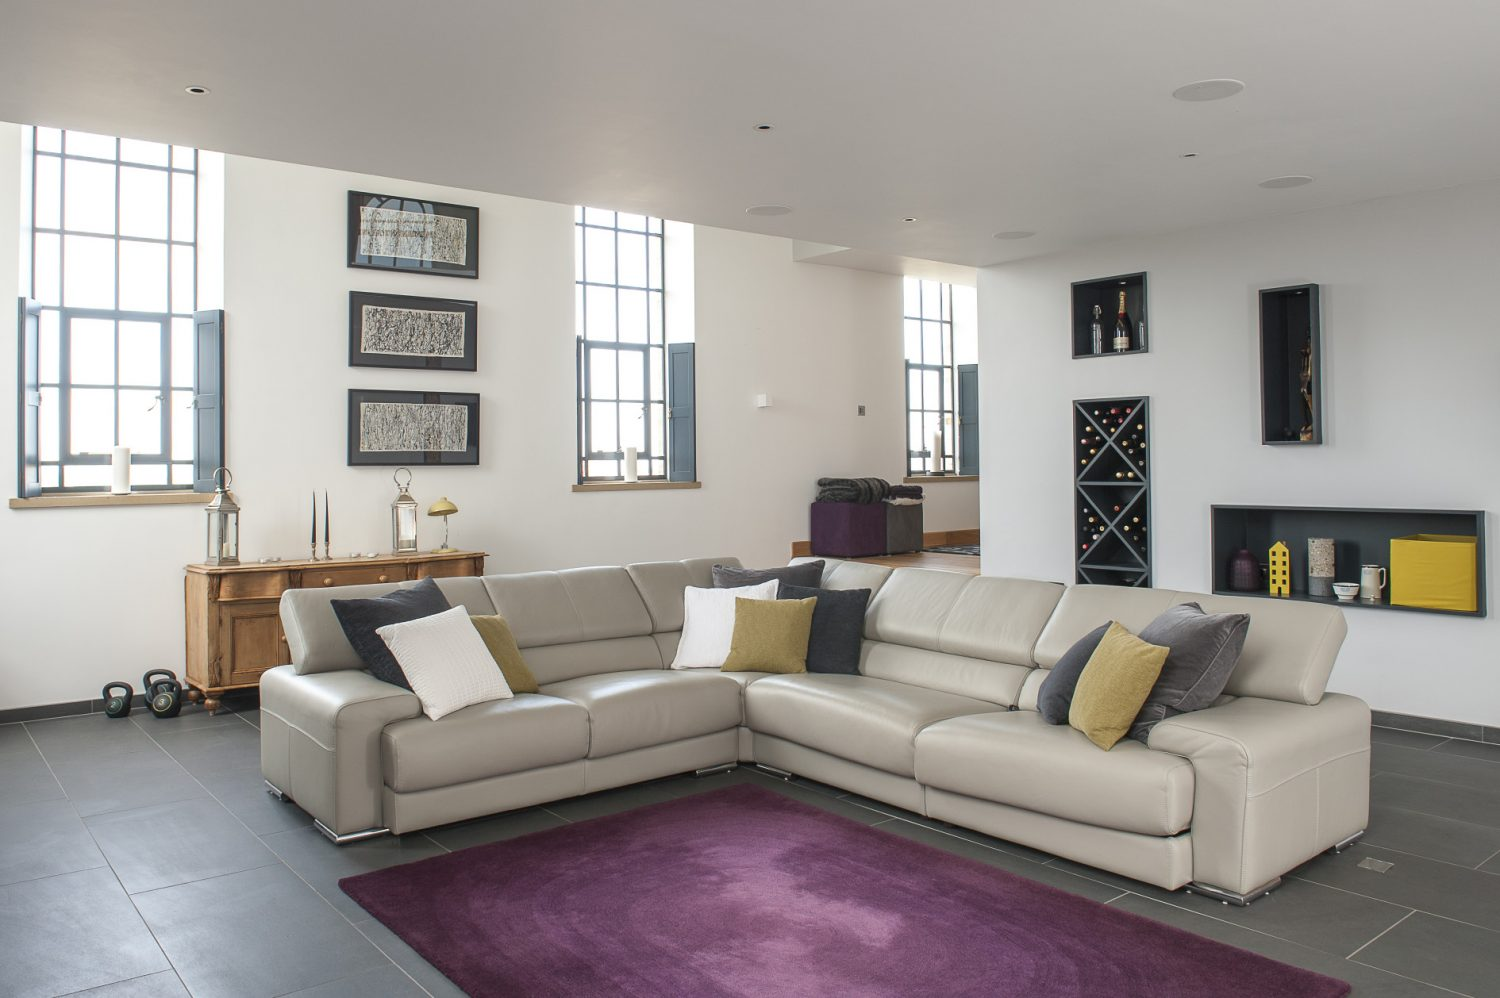 In the sitting room an L-shape of grey Spanish leather Cadira sofas gather round a mauve Habitat rug